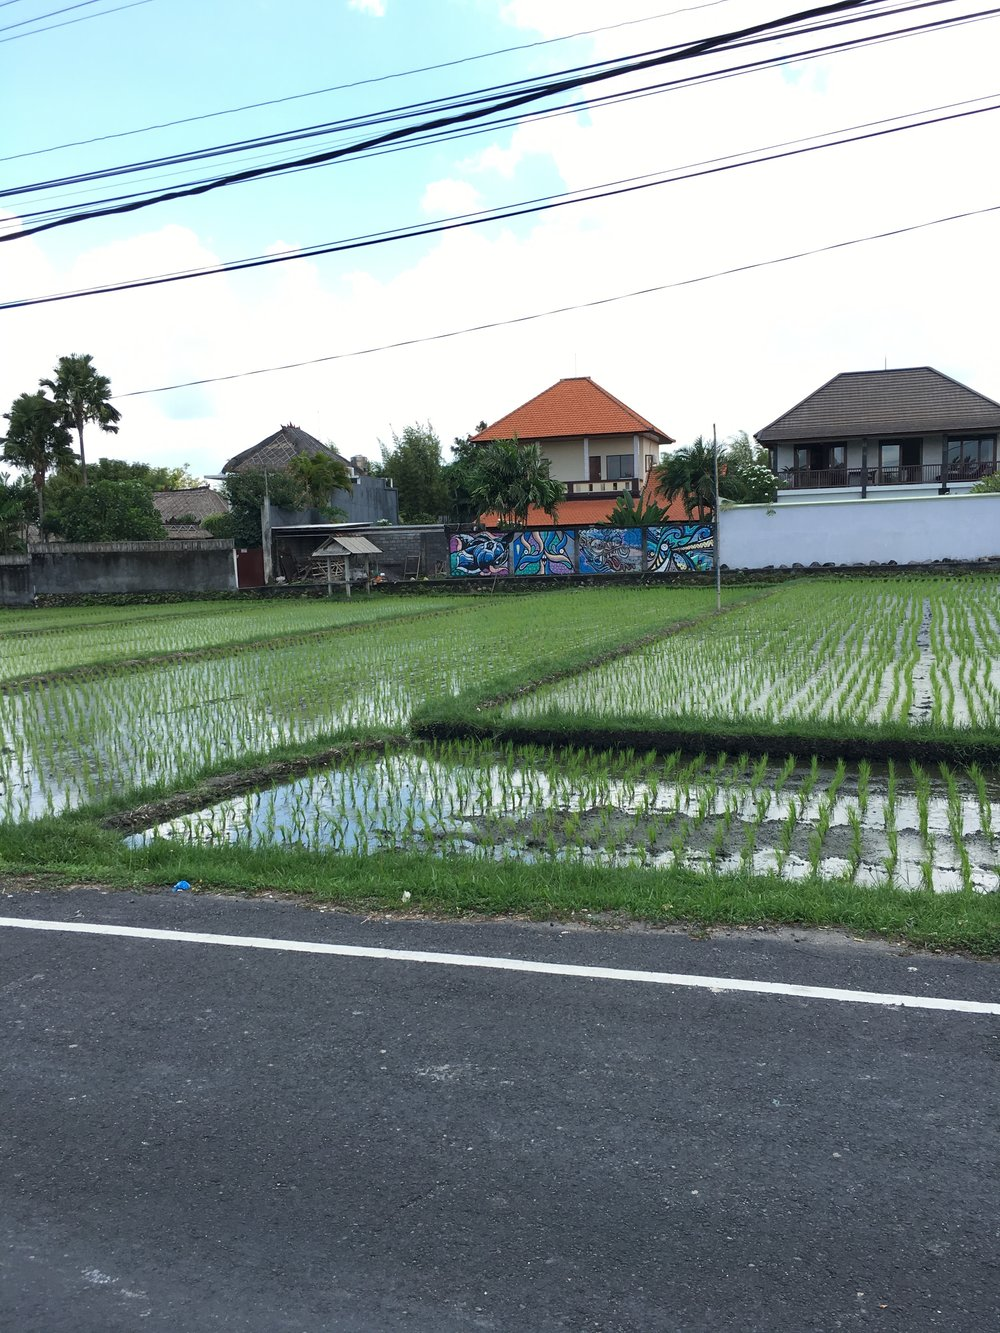 A common scene from the street in Canggu - rice fields and grafitti